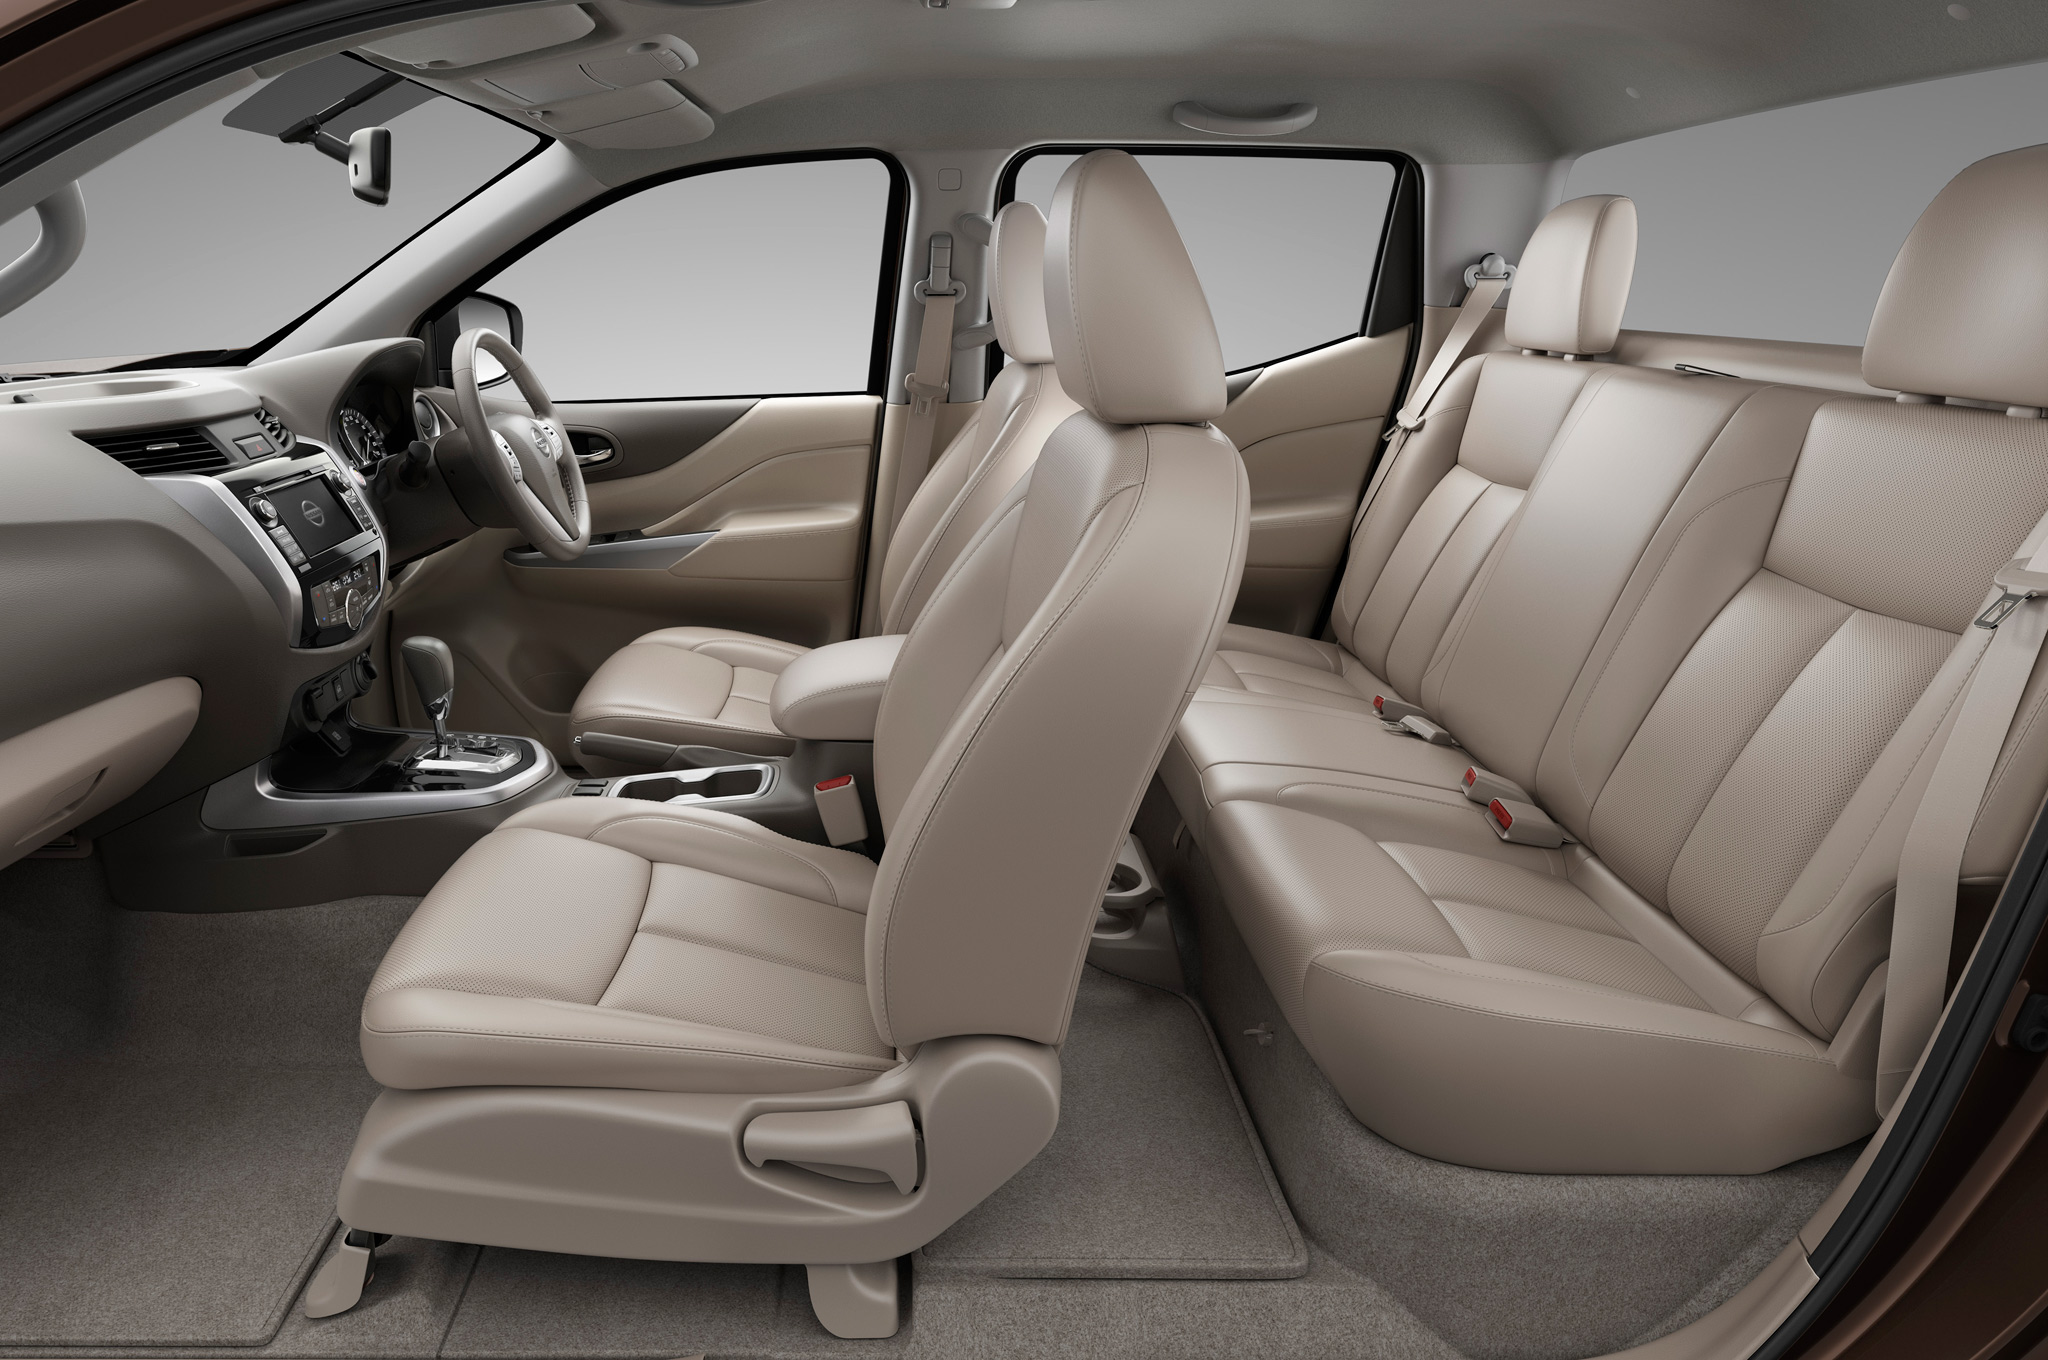 2015 All New Nissan Np300 Navara Front And Rear Interior (Photo 3 of 6)